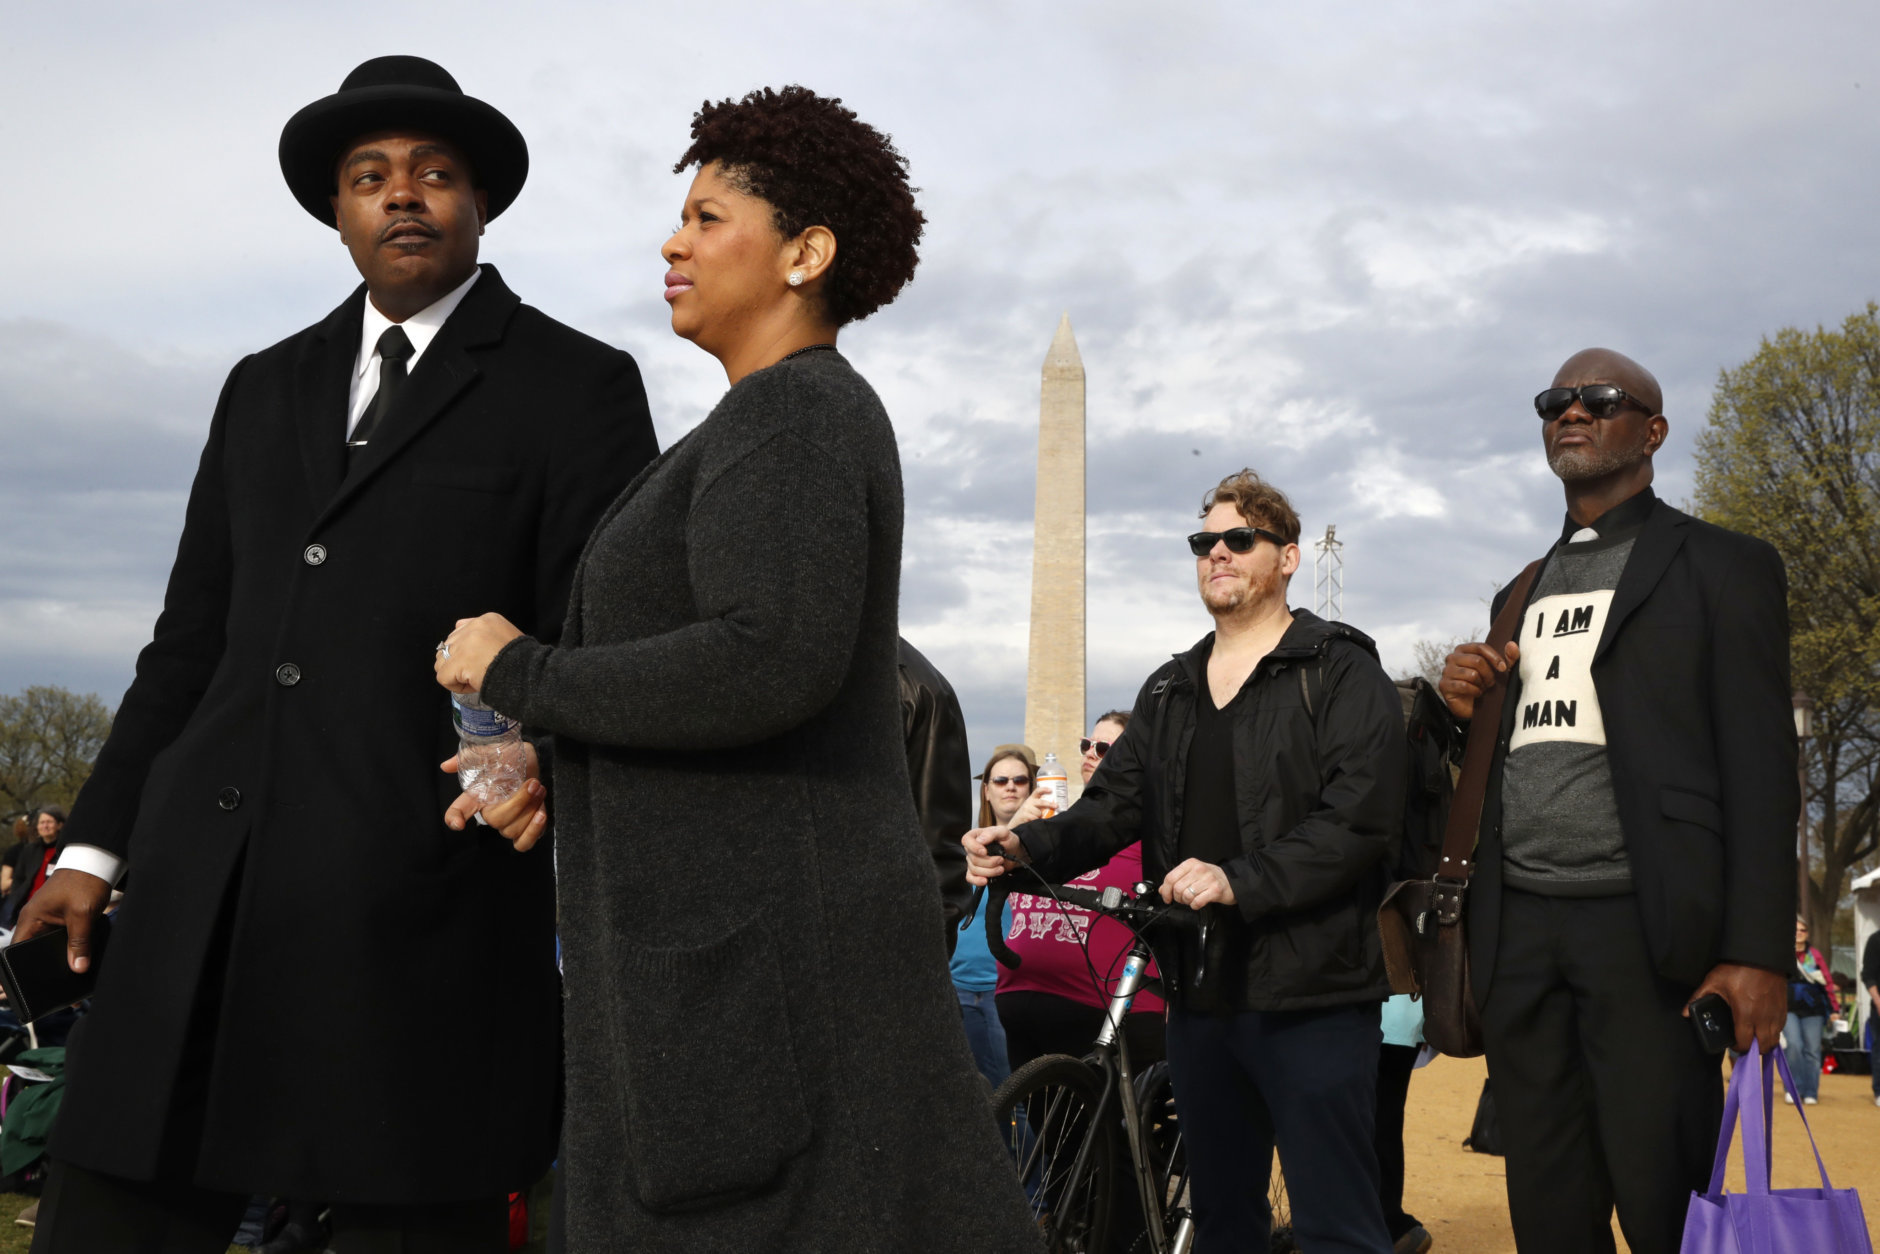 Milton A. Williams, left, pastor of Pennsylvania Ave. AME Zion Church in Baltimore, Ruth LaToison Ifill, with AME Zion Church, Stephen Marencic, of Washington, and Aaron Ward, of Washington, attend the A.C.T. To End Racism rally, Wednesday, April 4, 2018, on the National Mall in Washington, on the 50th anniversary of Martin Luther King Jr.'s assassination. (AP Photo/Jacquelyn Martin)